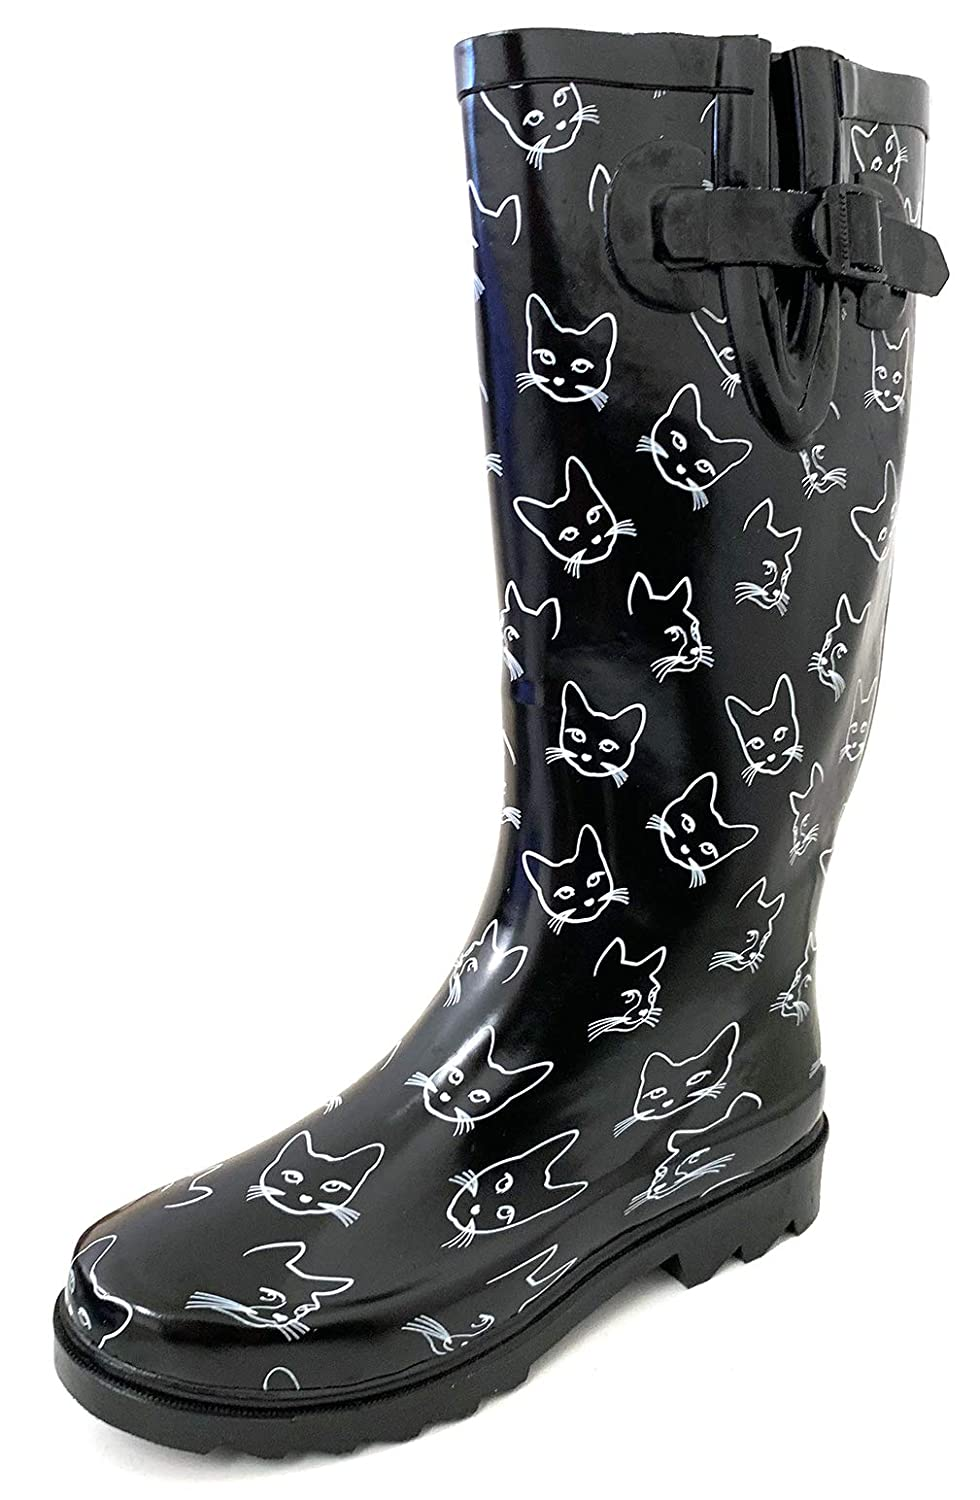 Black White Cats G4U Women's Rain Boots Multiple Styles color Mid Calf Wellies Buckle Fashion Rubber Knee High Snow shoes